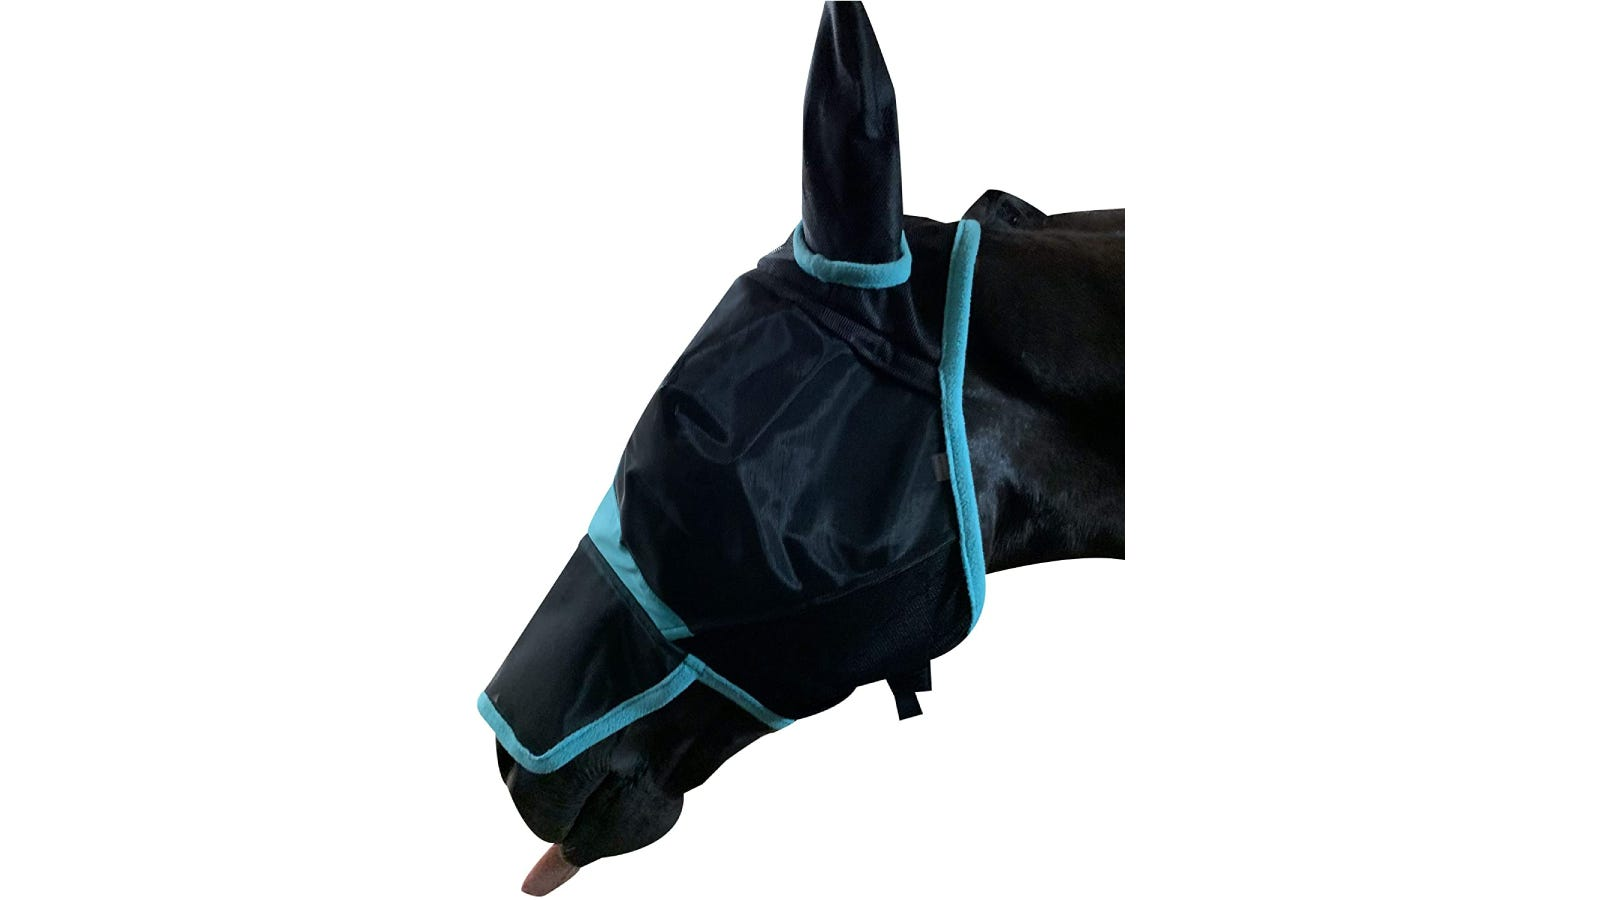 Black horse wearing a blue and black mask that covers the horse's face from its ears to its nose.